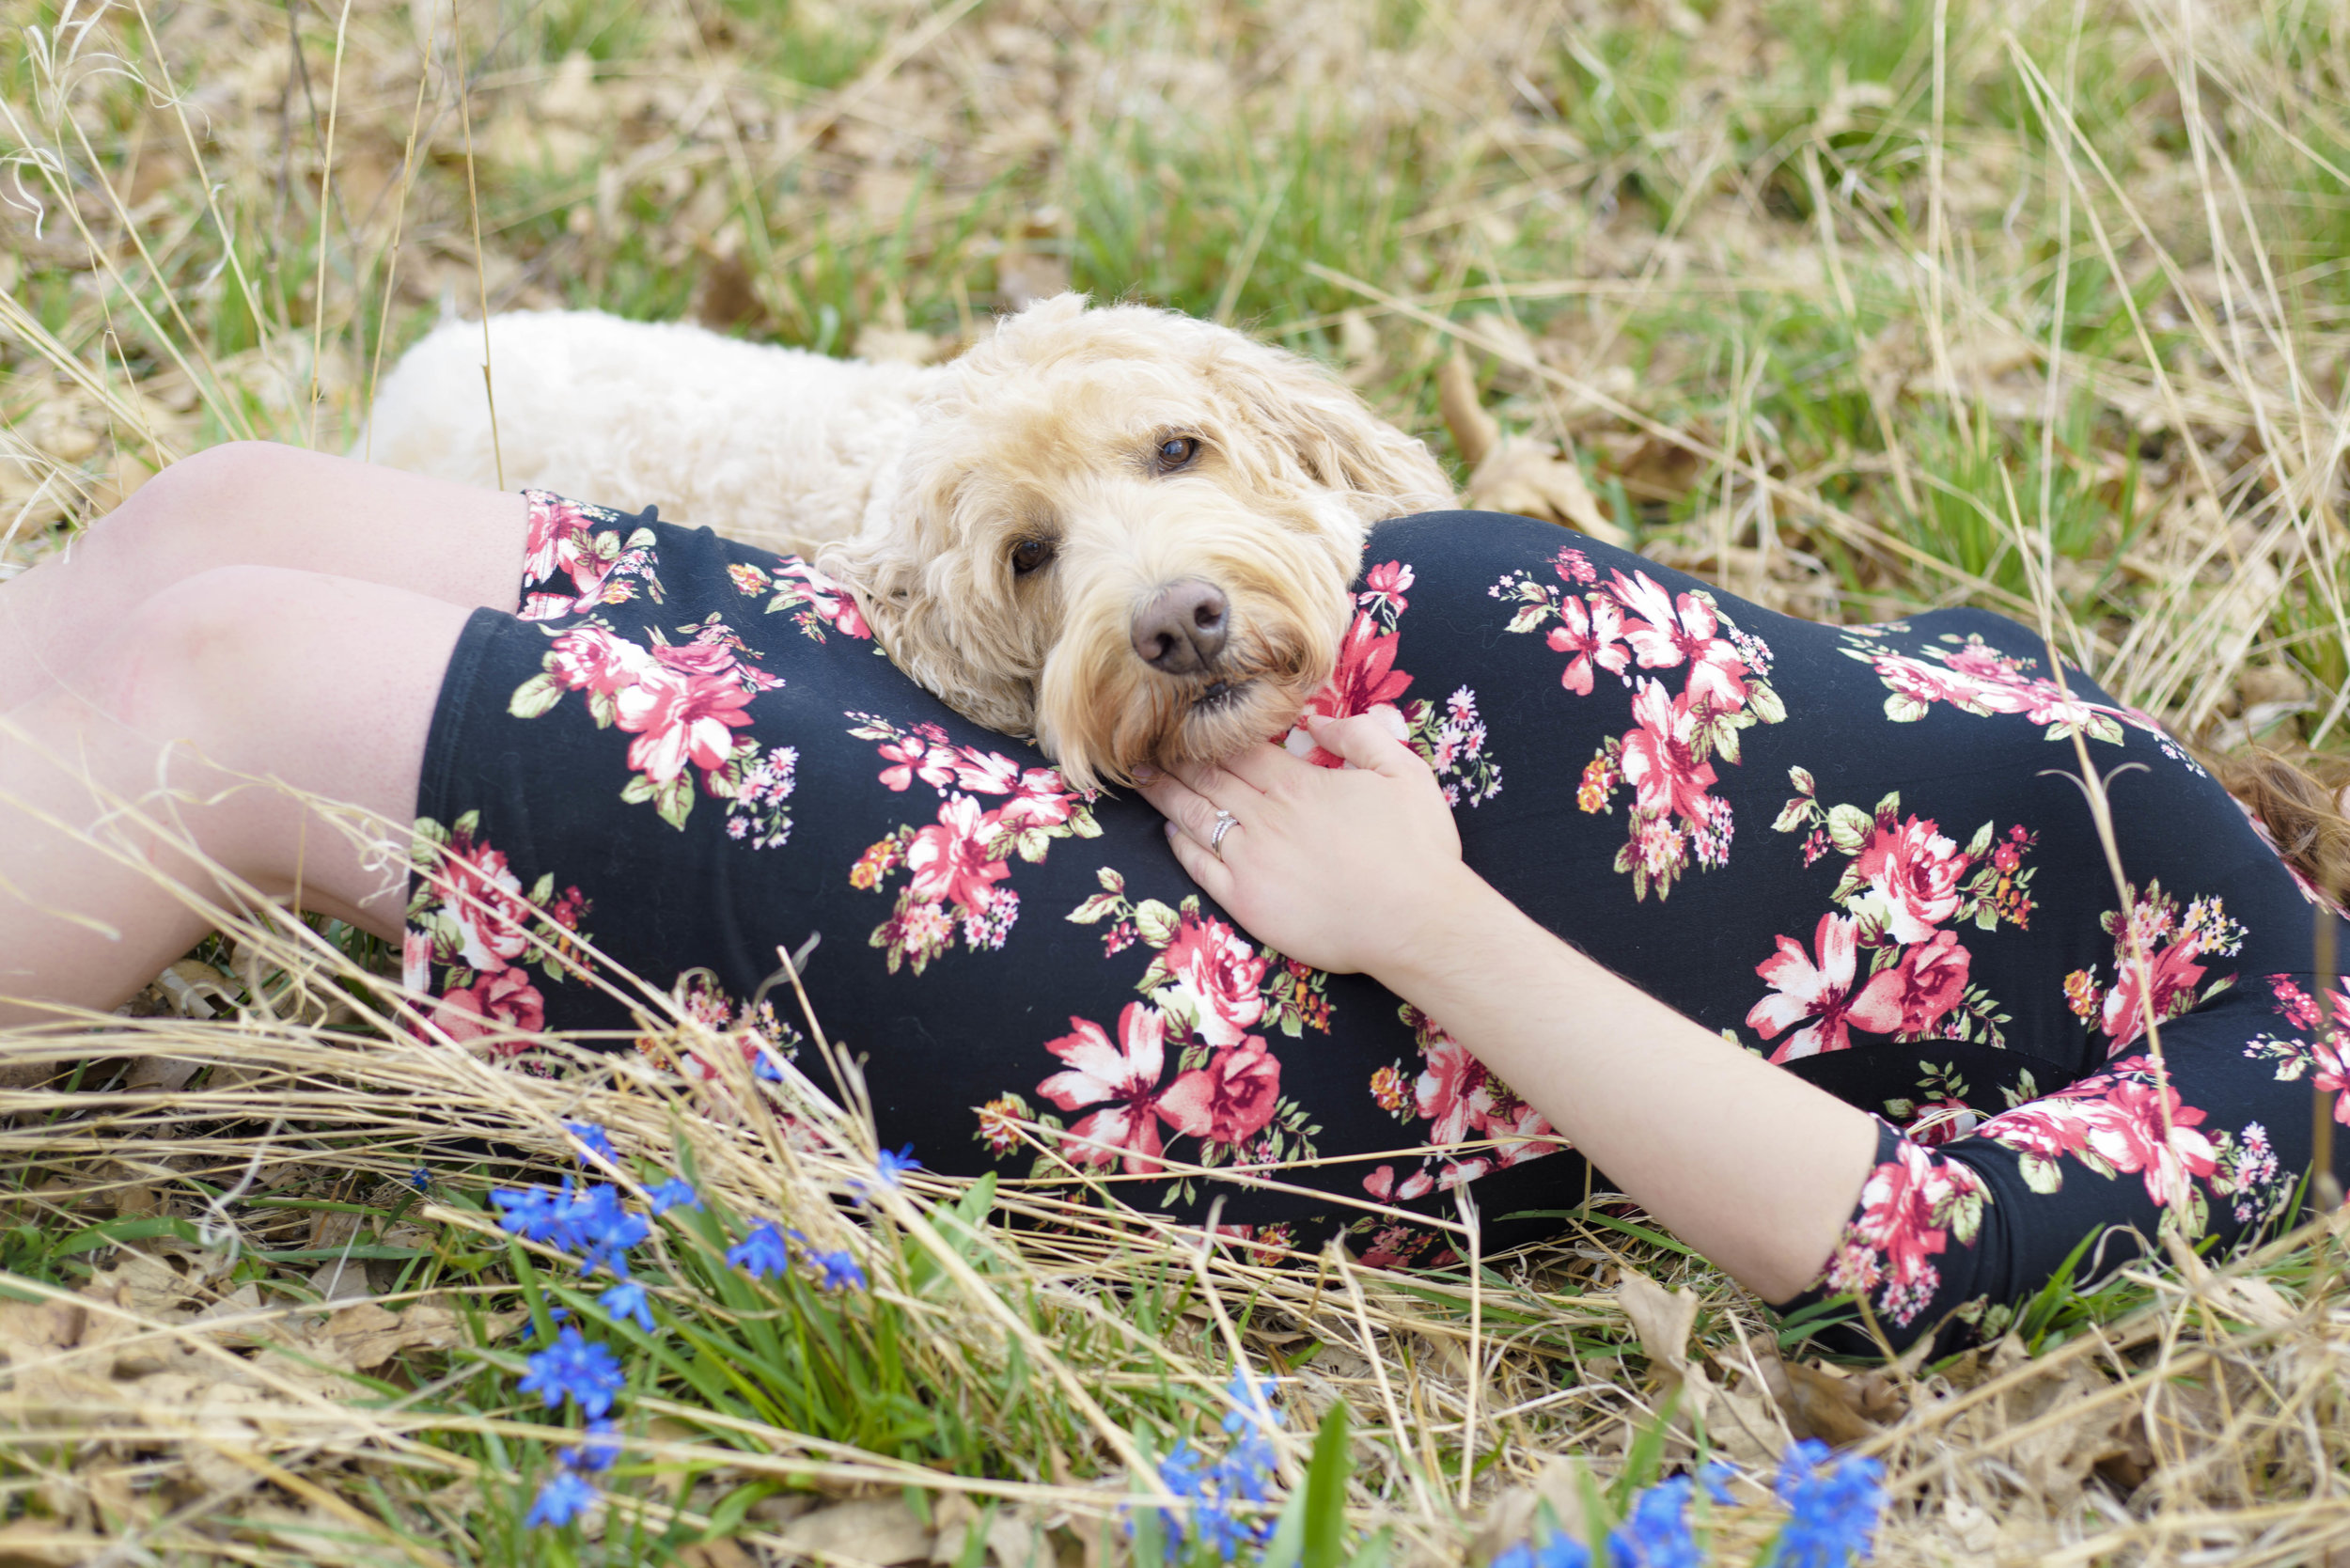 chicago-maternity-photographer-goldendoodle-with-bump©CopyrightCMP-7364.jpg